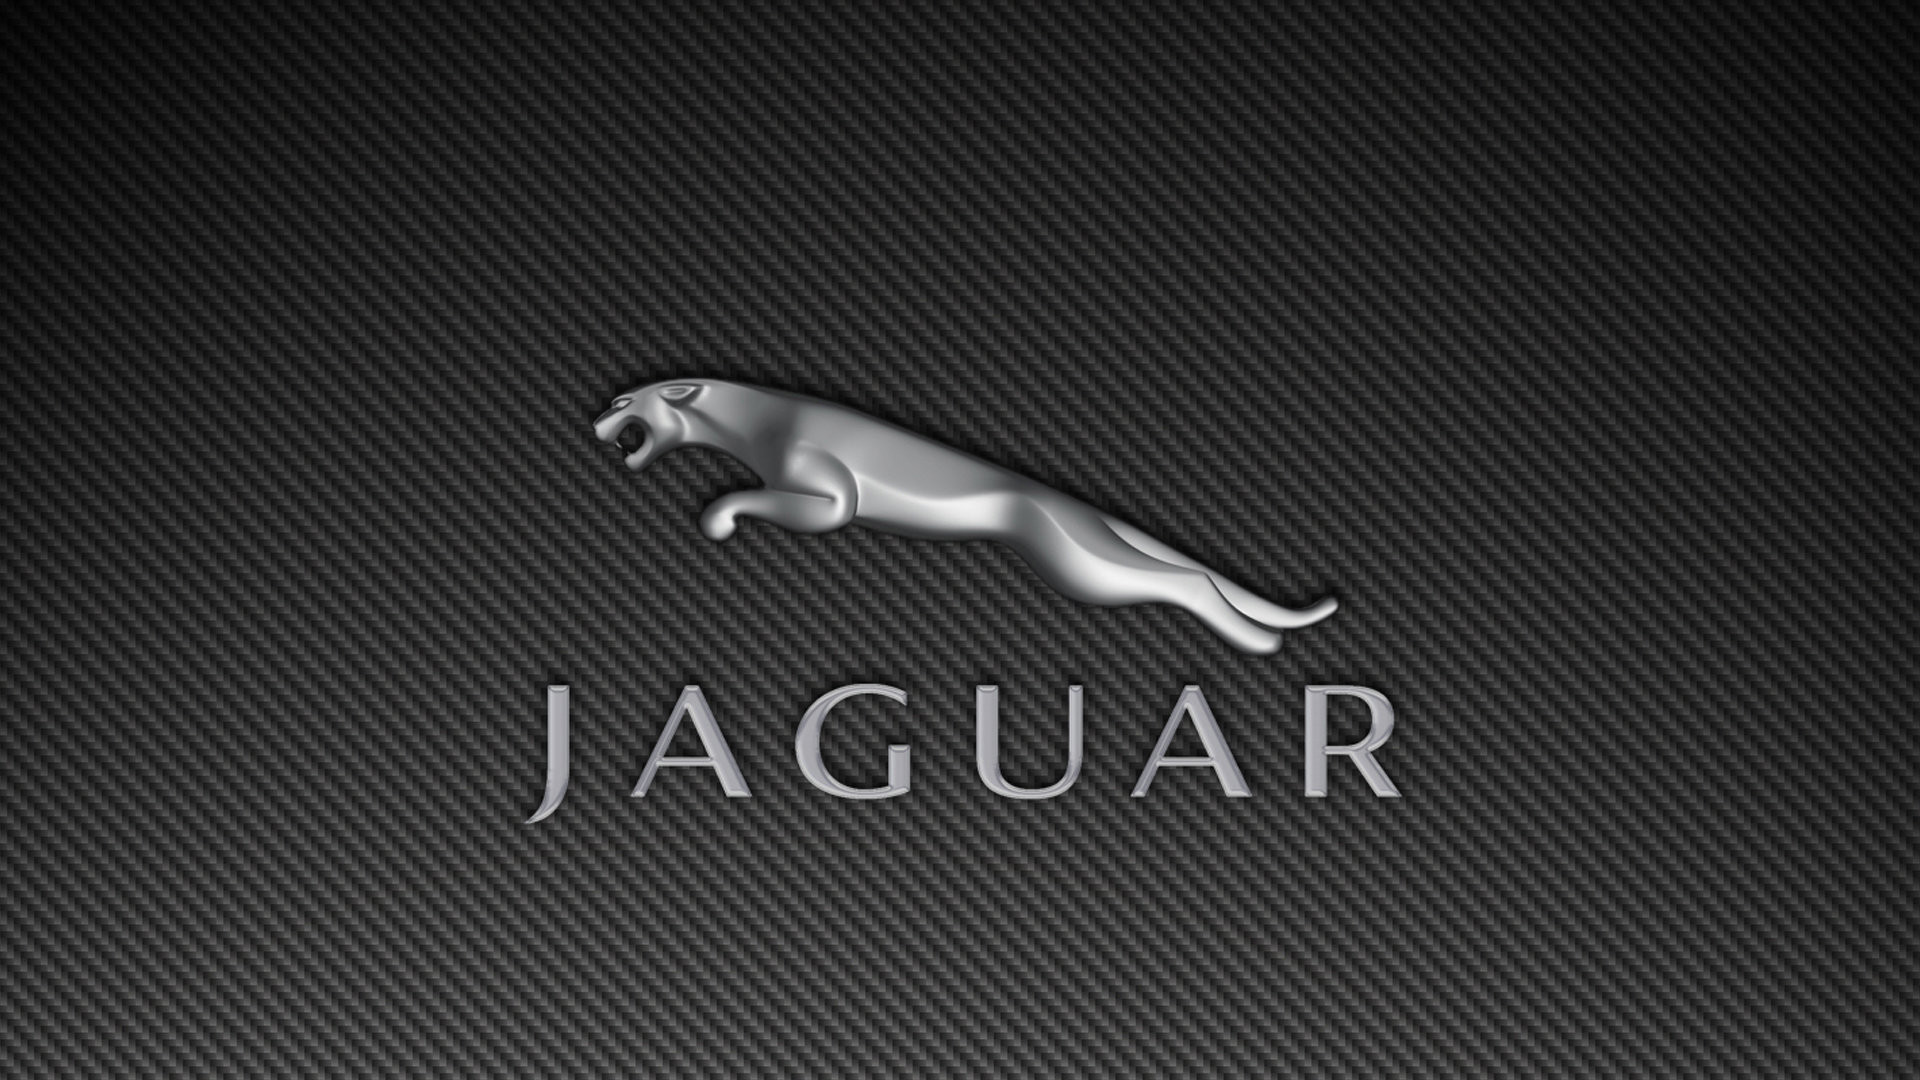 1920x1080 Jaguar Logo HD Wallpaper 1080p Wallpaper